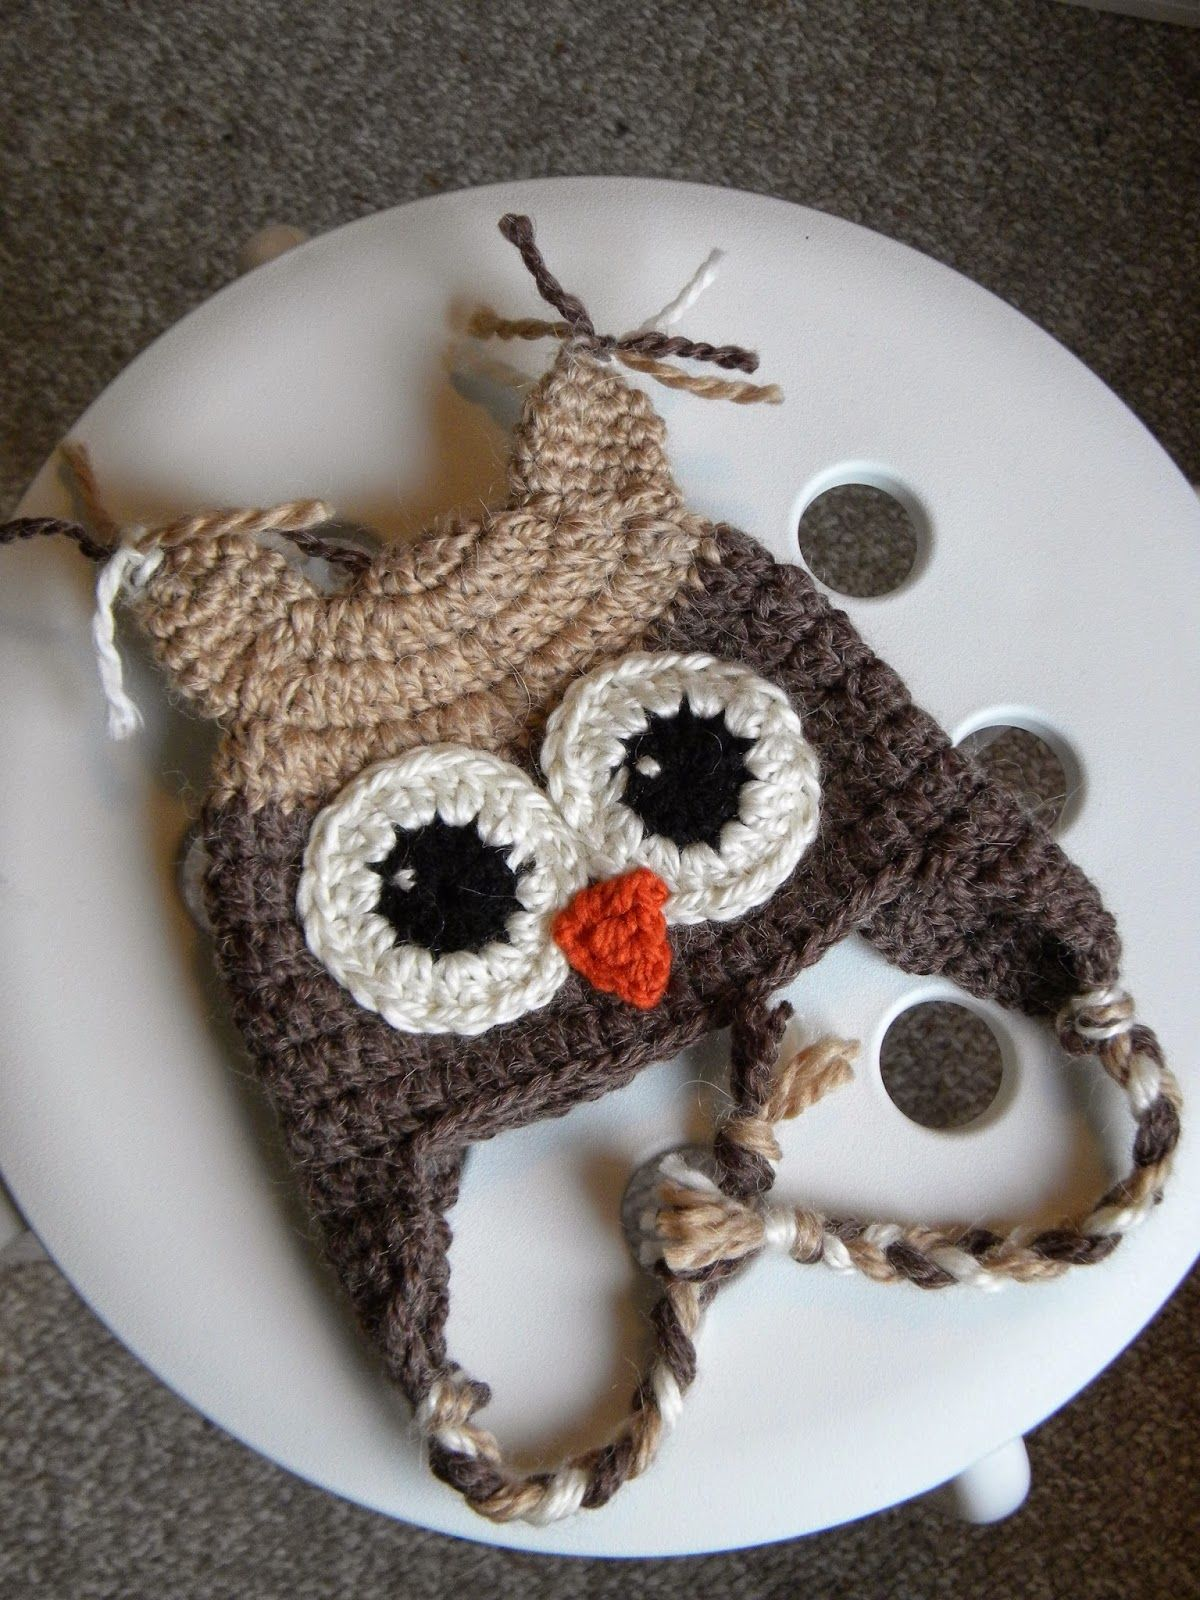 Knotty knotty crochet hoot hoot owl hat free pattern whoooo knotty knotty crochet hoot hoot owl hat free pattern bankloansurffo Image collections